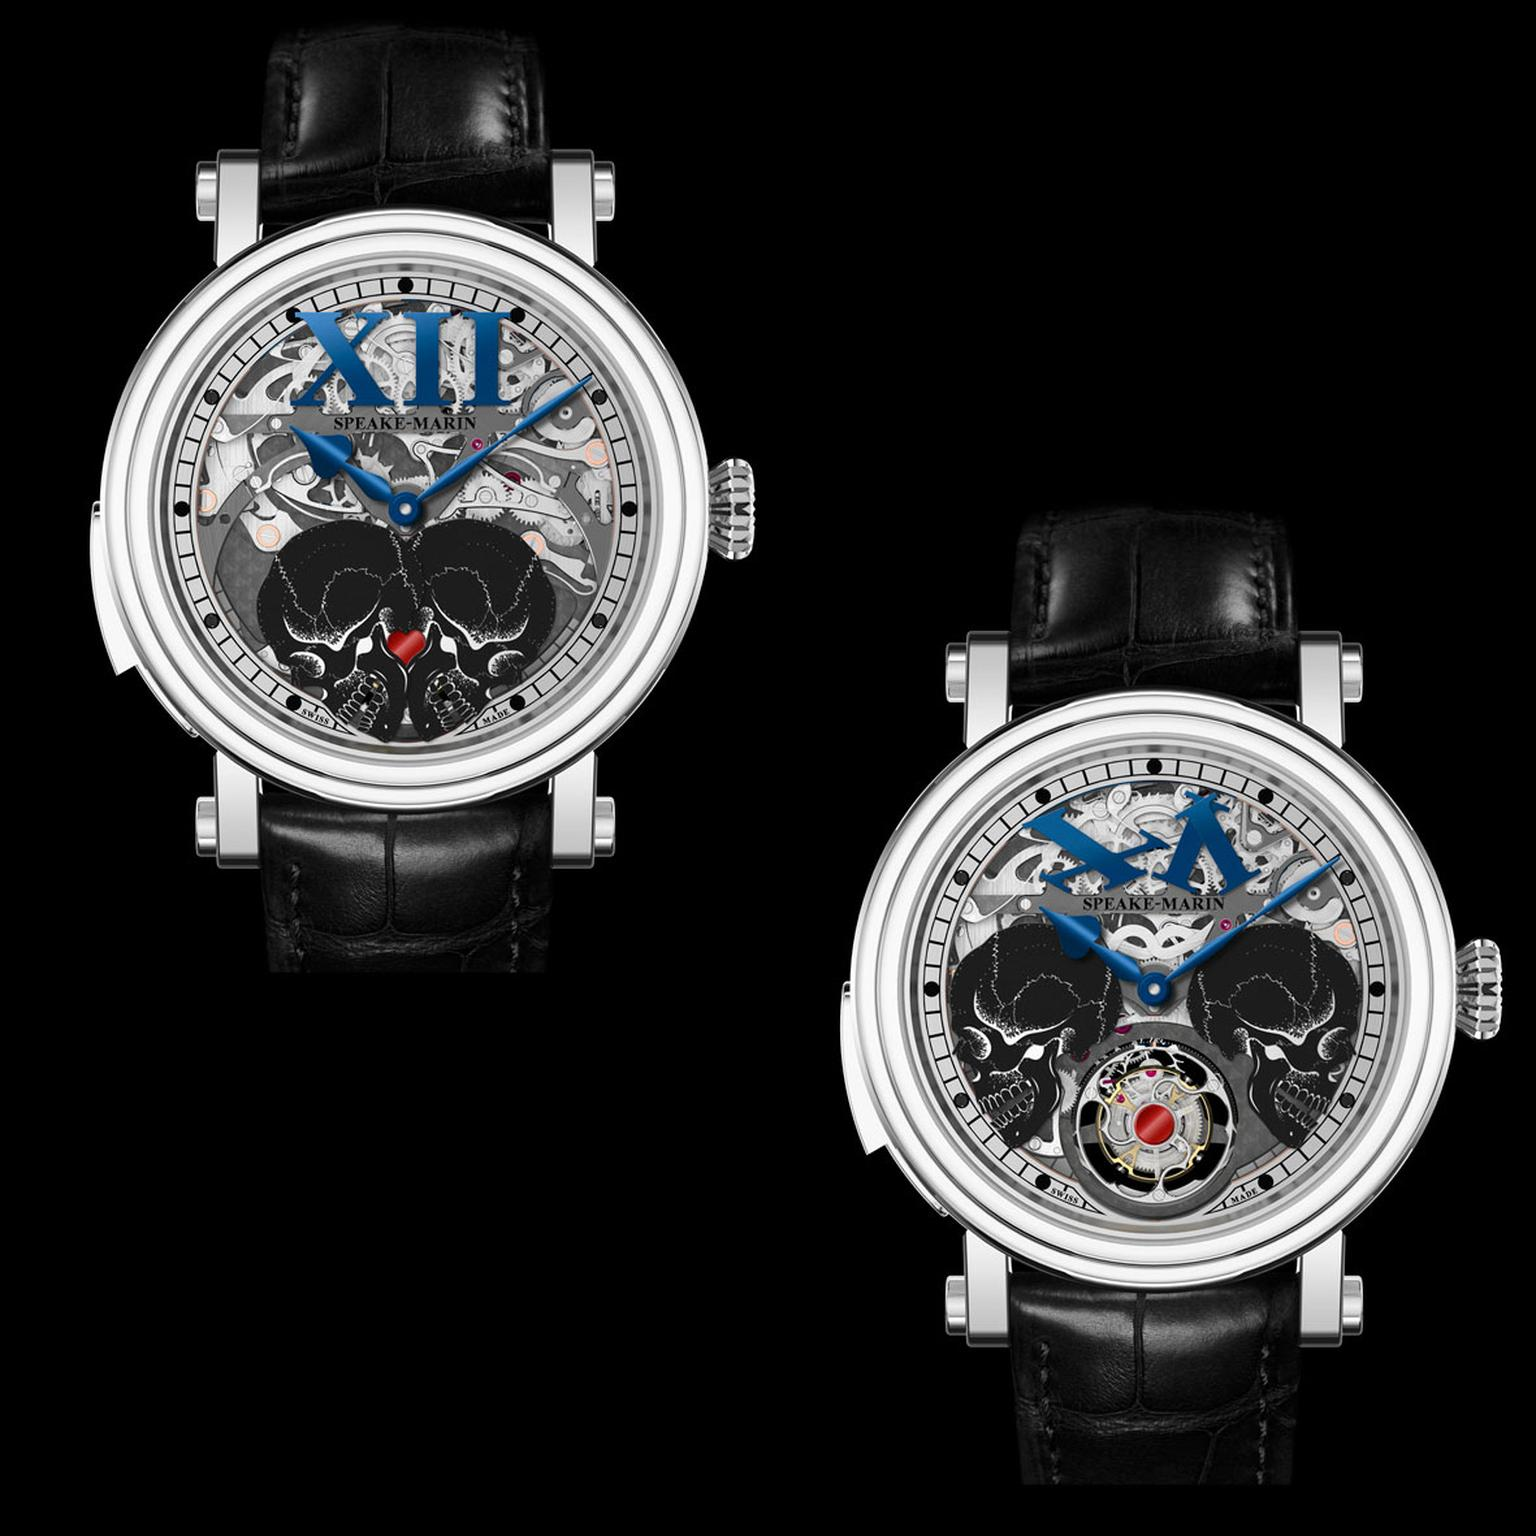 Speake-Marin Crazy Skulls watch